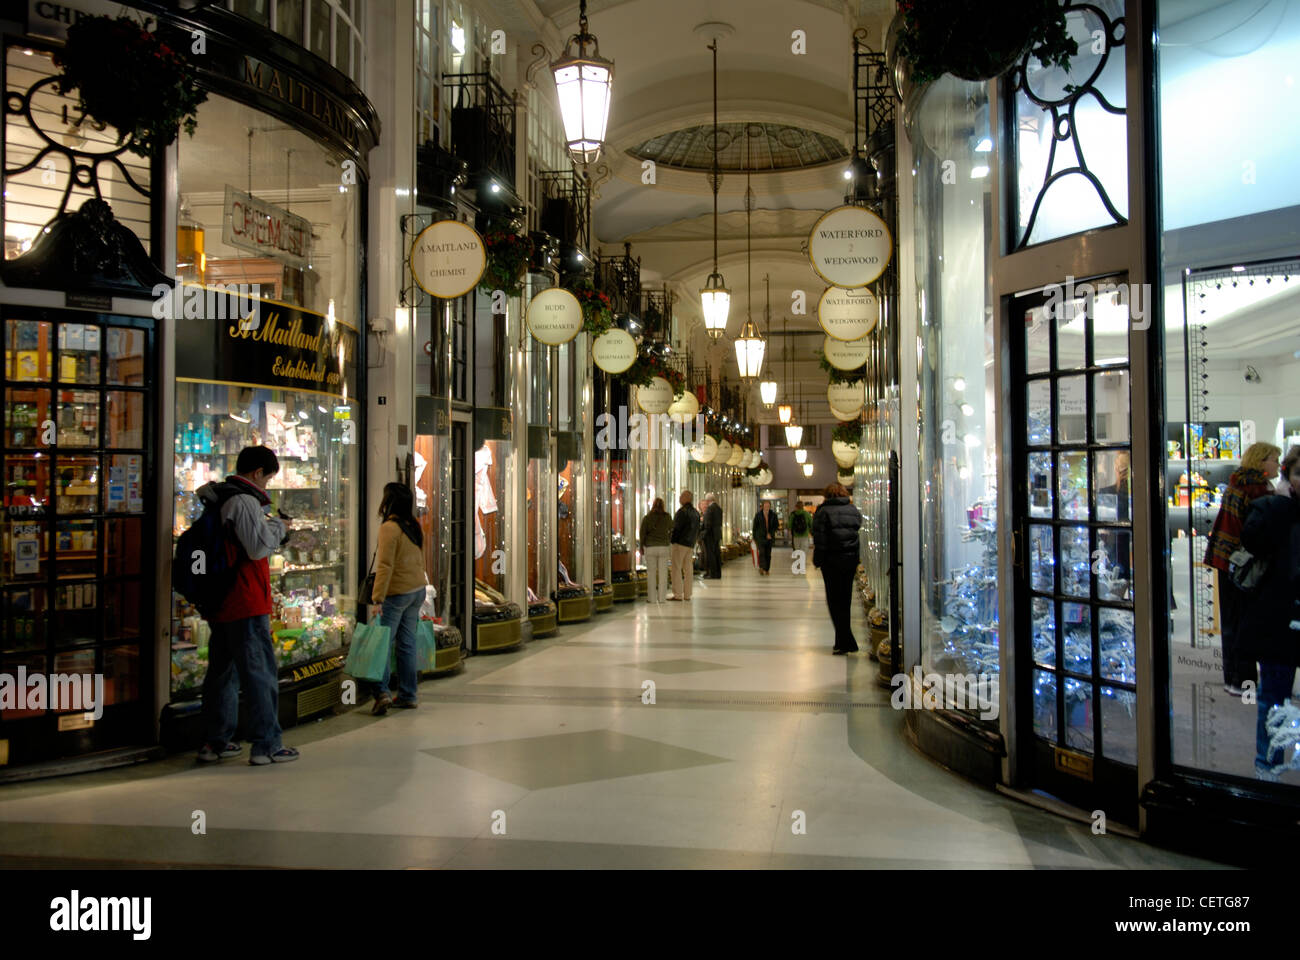 Princes Arcade. This Victorian shopping mall contains both modern and traditional shops. Stock Photo